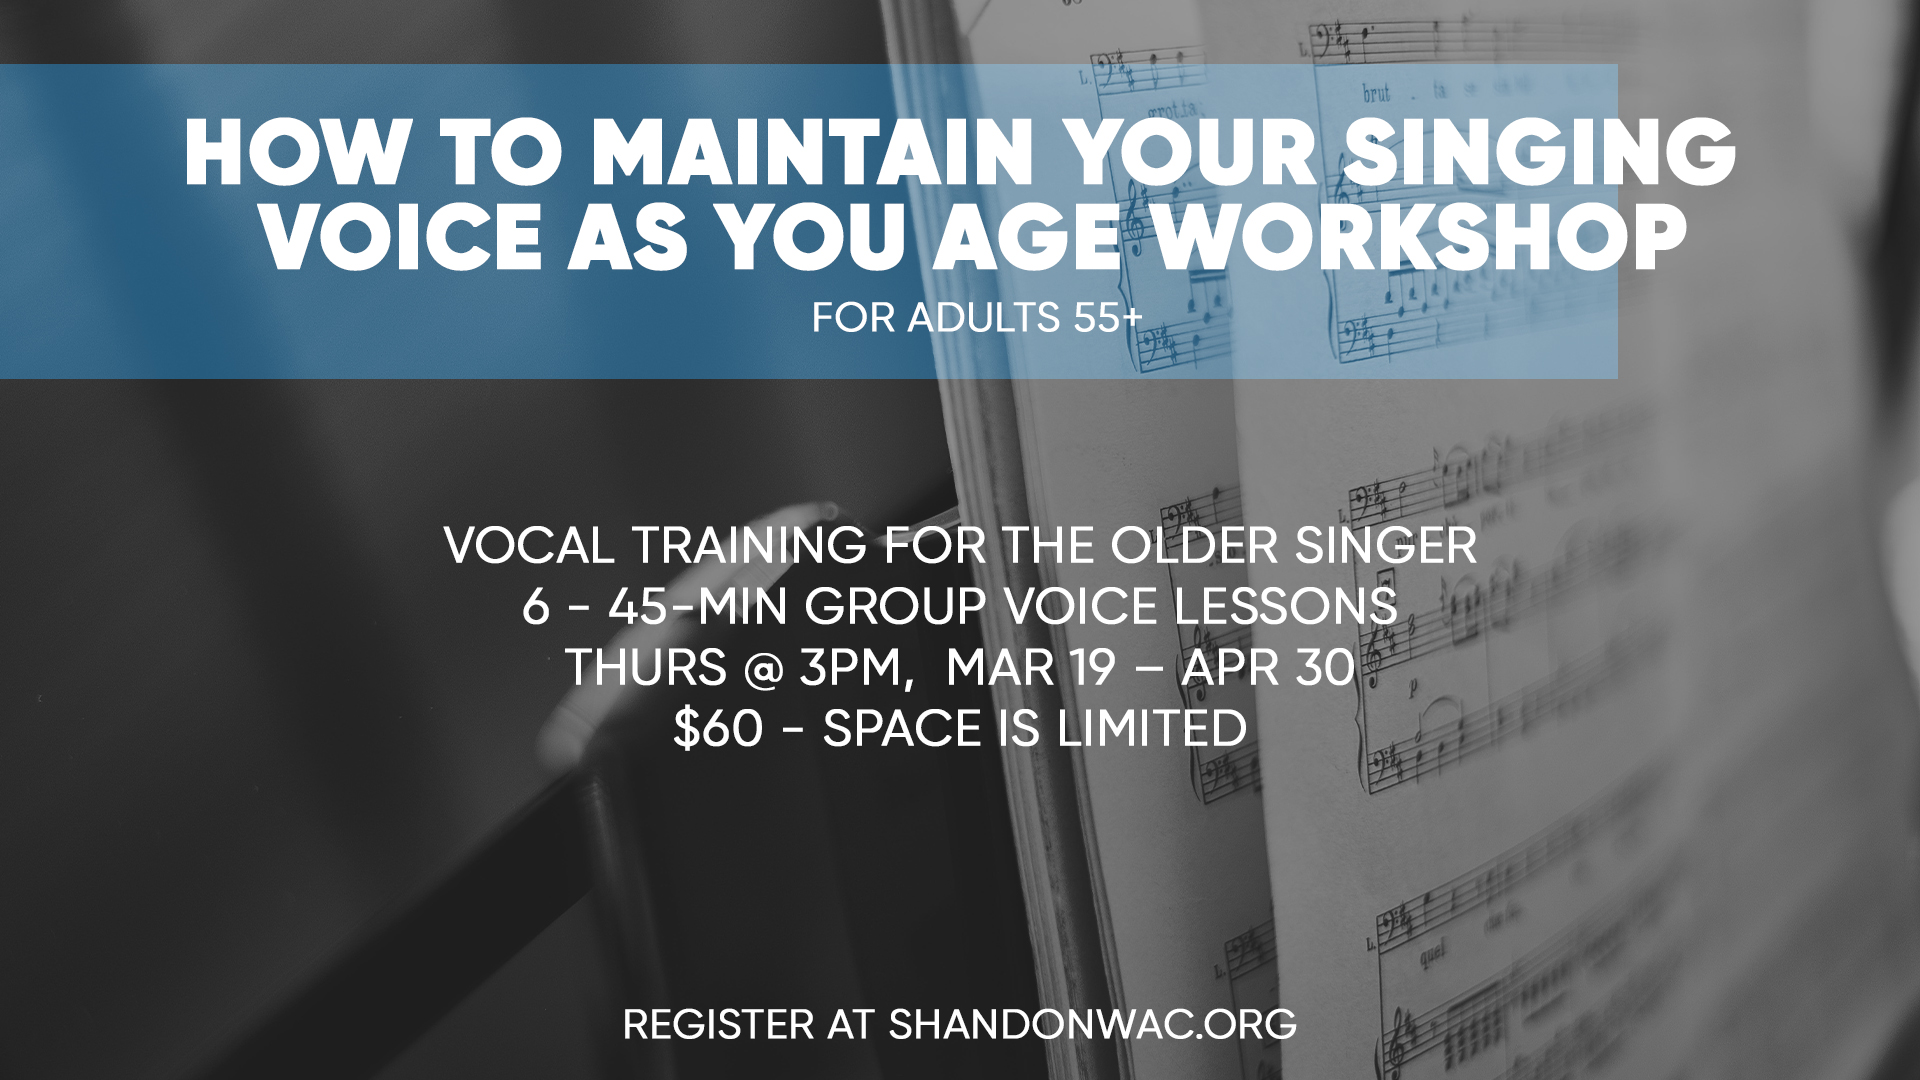 Worship Arts Center Workshop - Maintain Your Singing Voice As You Age